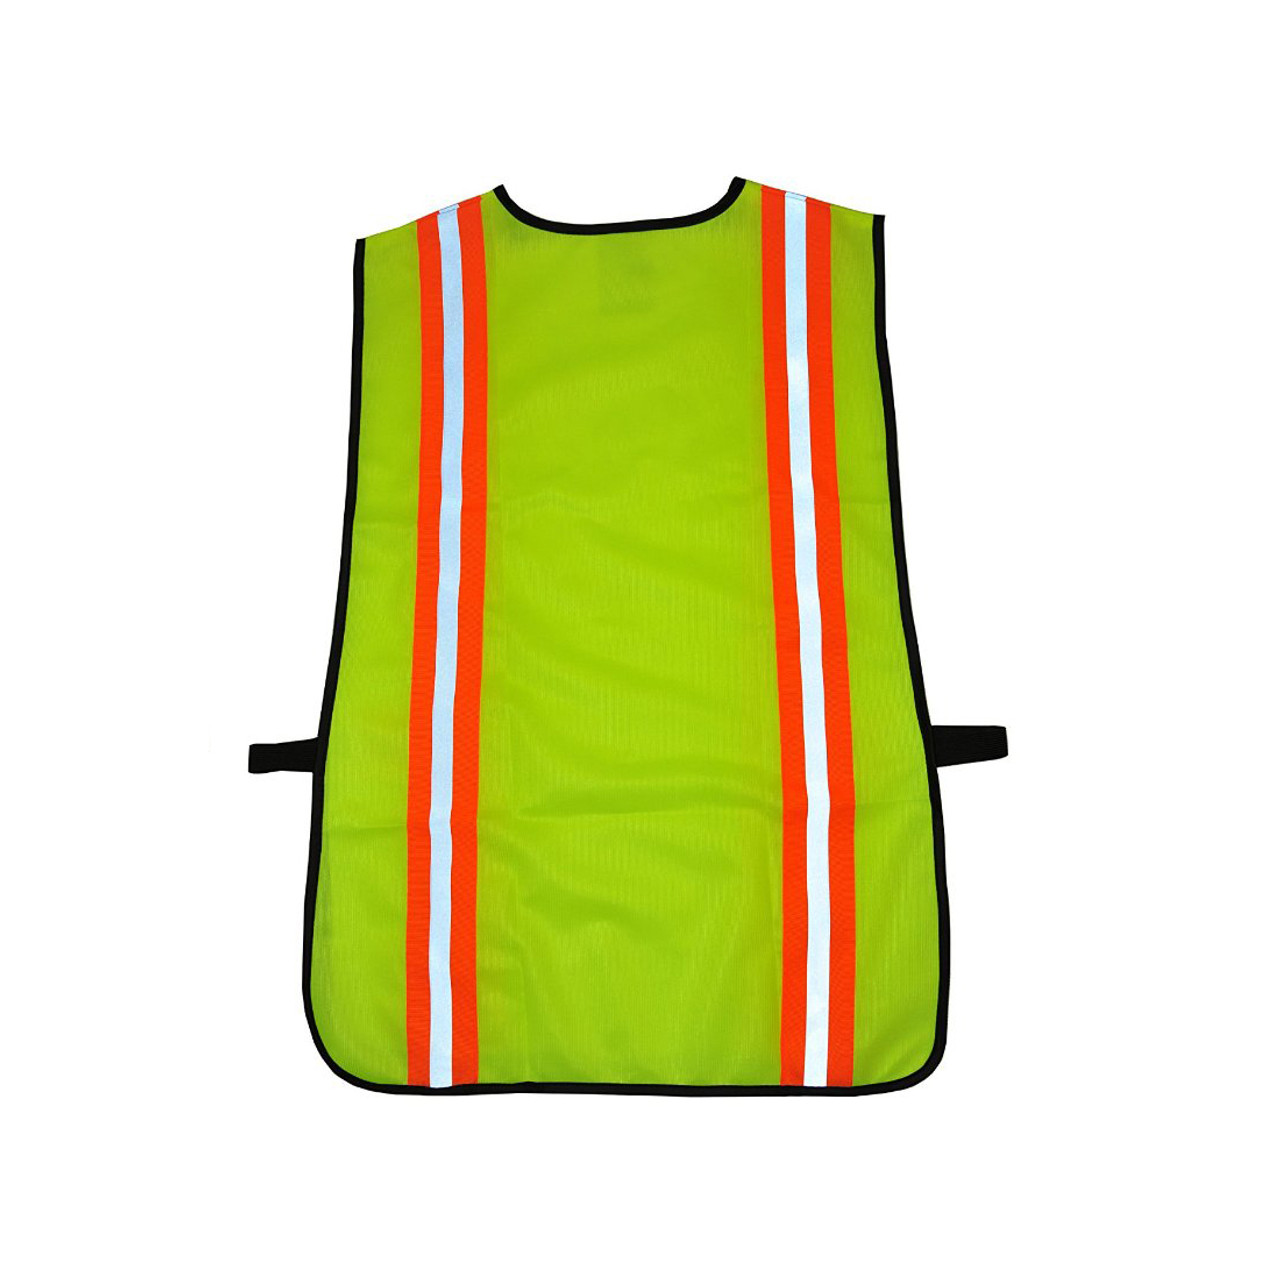 Neon Green Size Large G & F Products Reflective Vest Safety